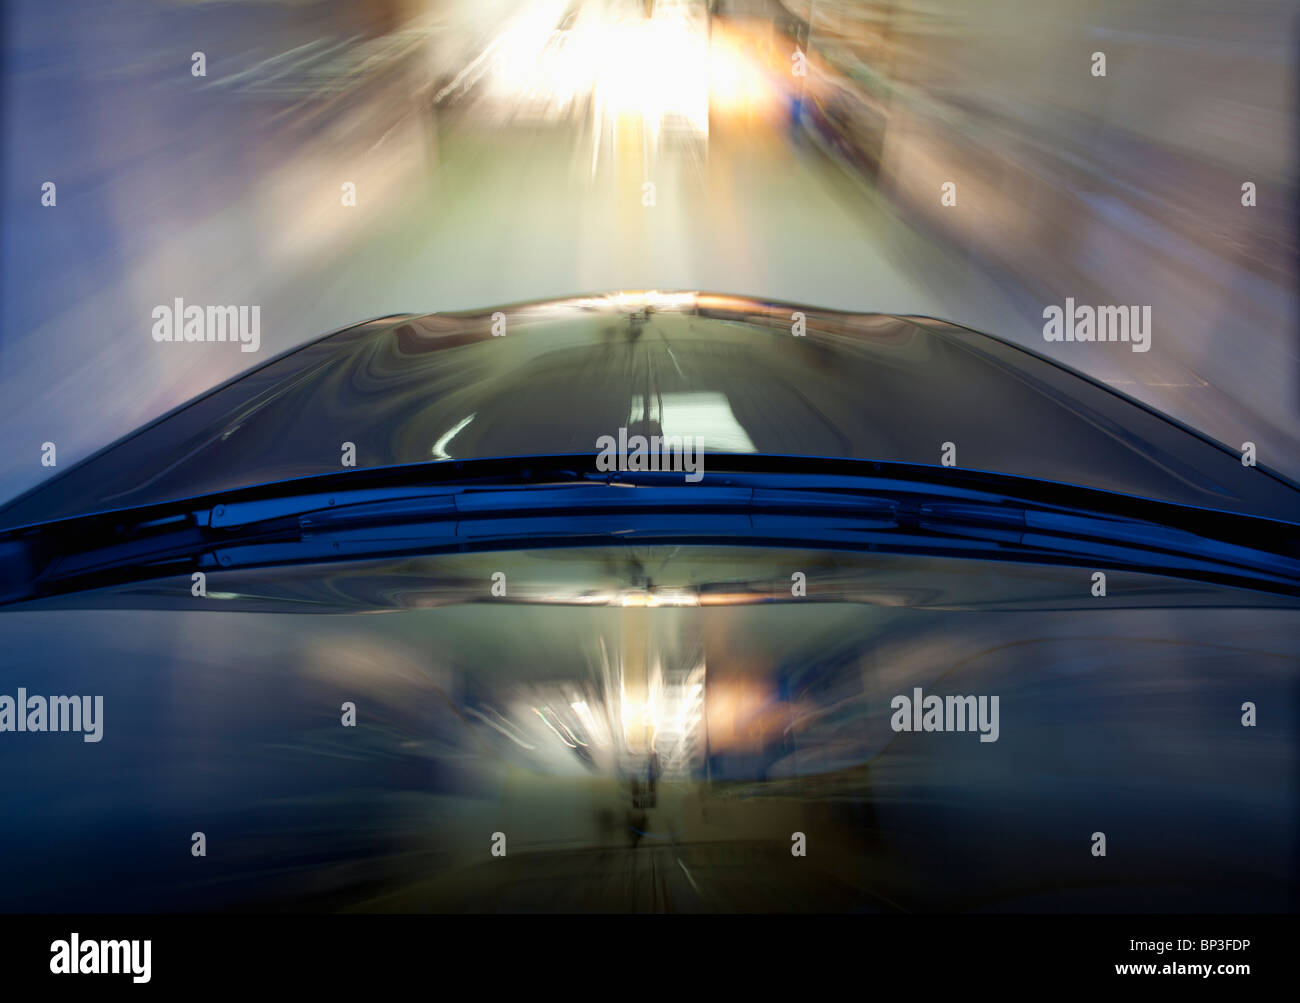 Pix of Car in motion in City - Stock Image